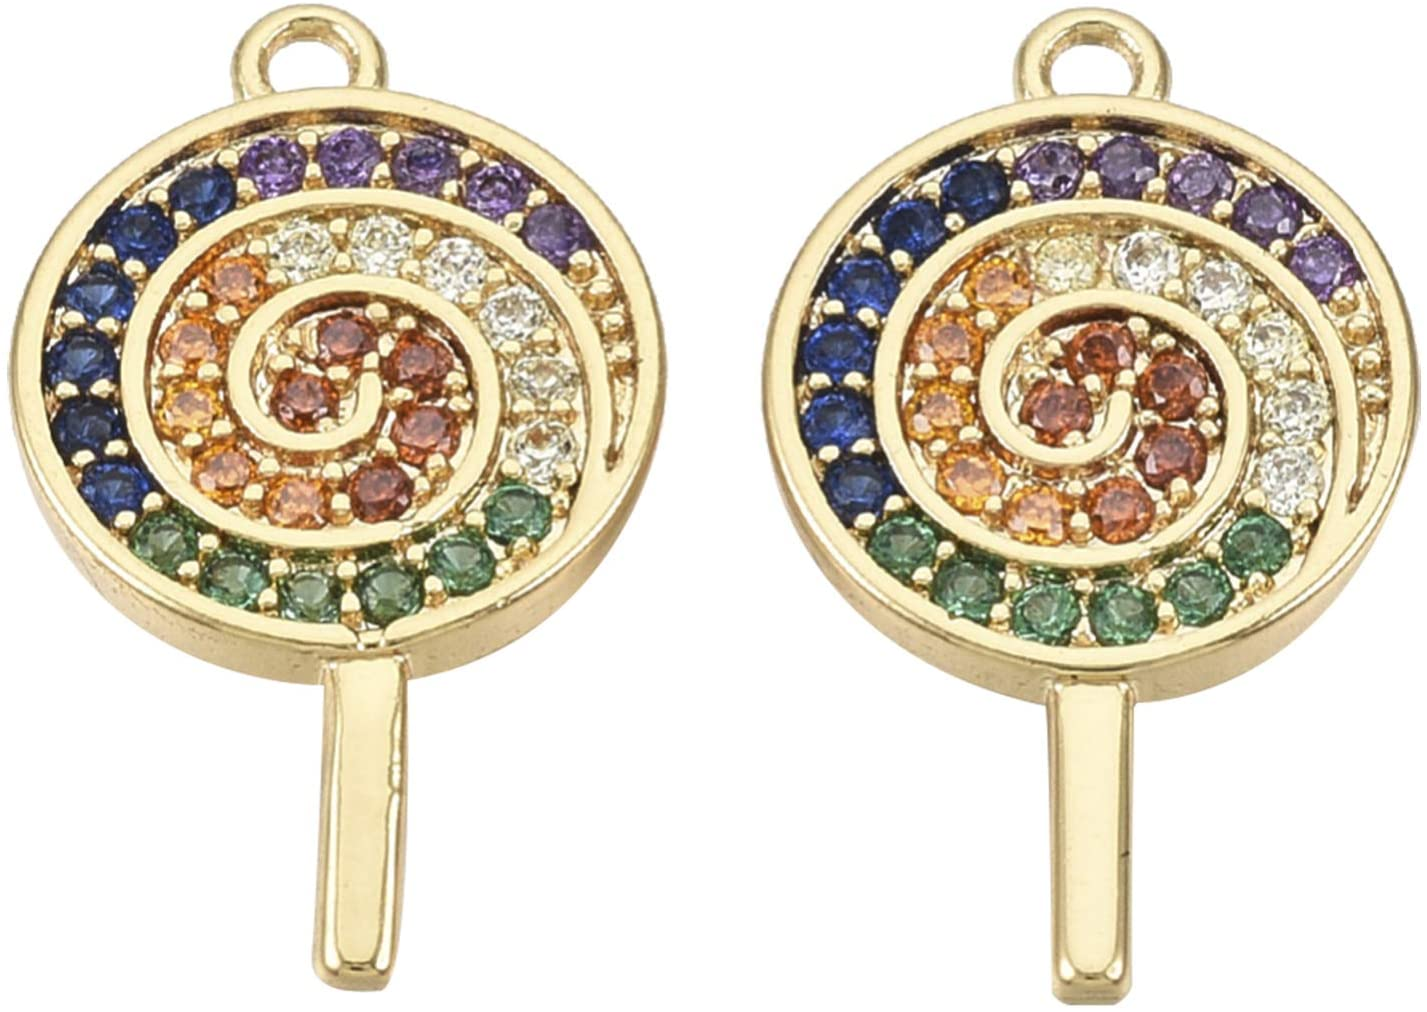 Airssory 10 Pcs Colorful Lollipop Brass Micro Pave Cubic Zirconia Pendants Nickel Free Real 18K Gold Plated Charms for Jewelry Making - 16x9.5mm